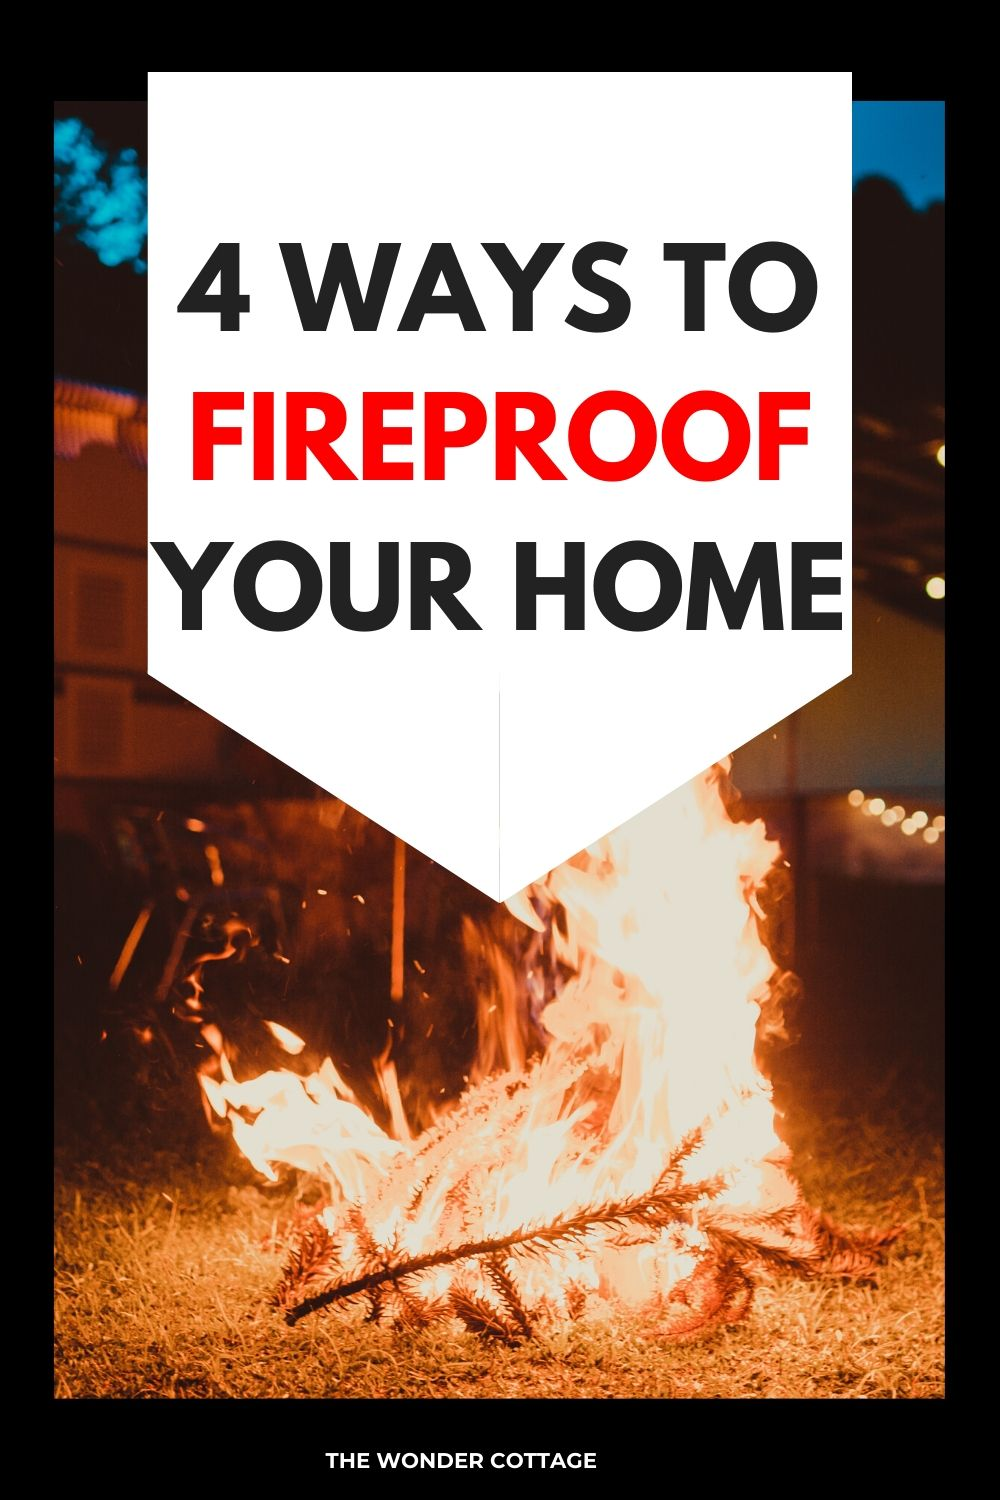 4 ways to fireproof your home